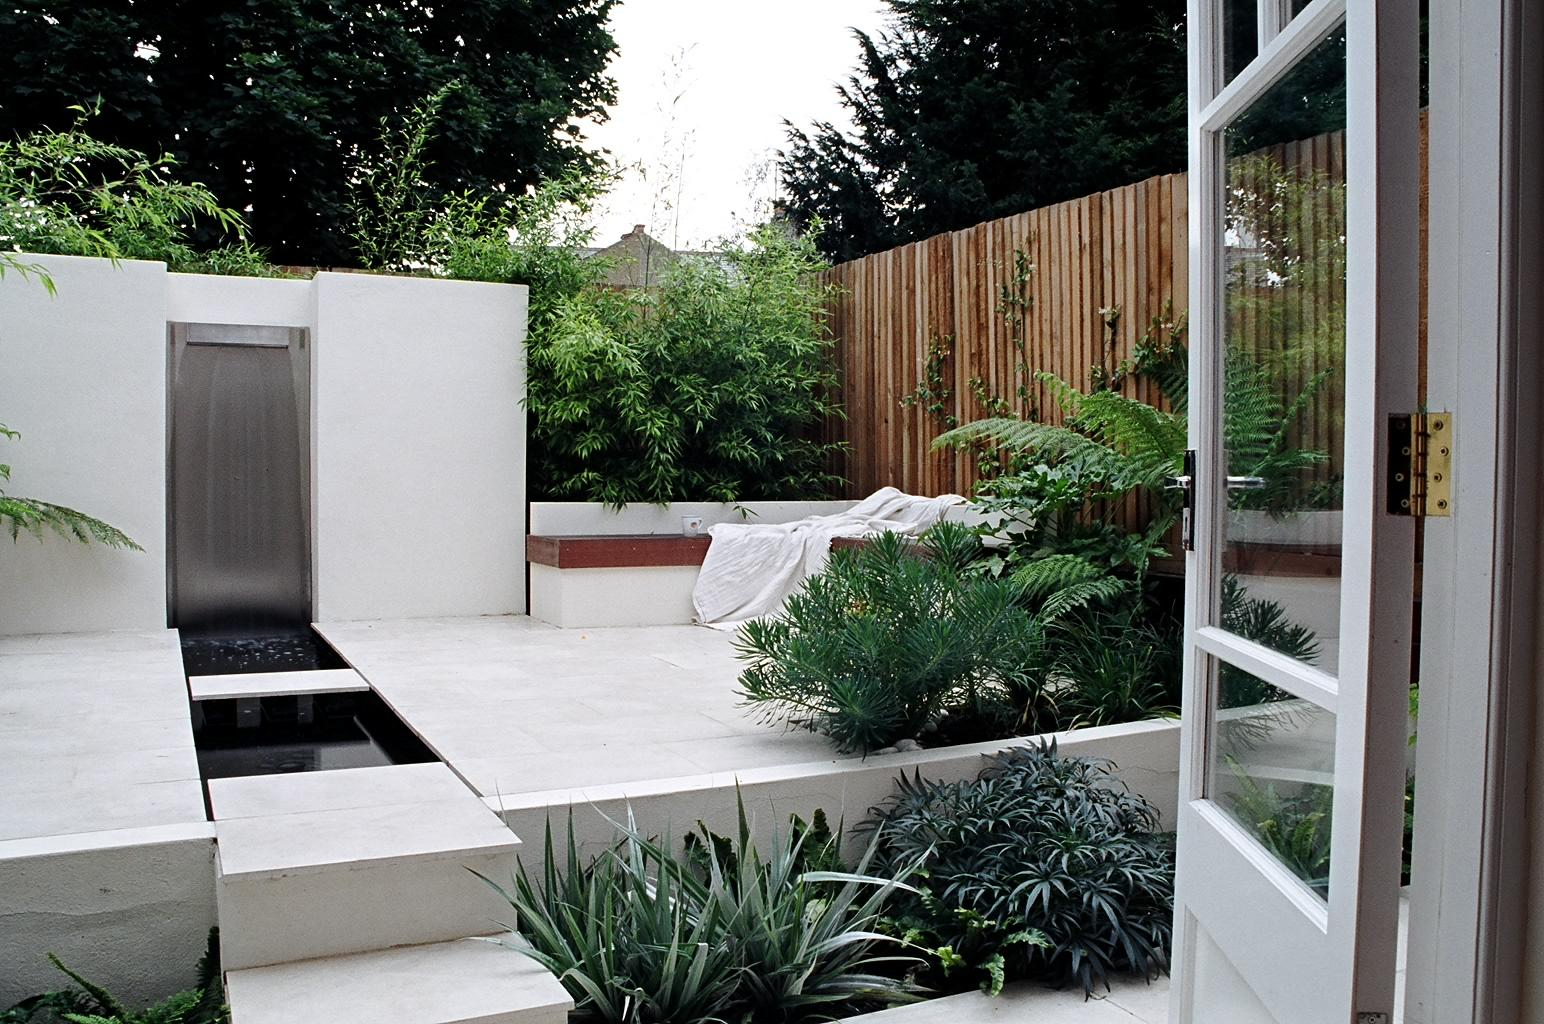 Small urban garden design garden design st albans for Small garden design uk